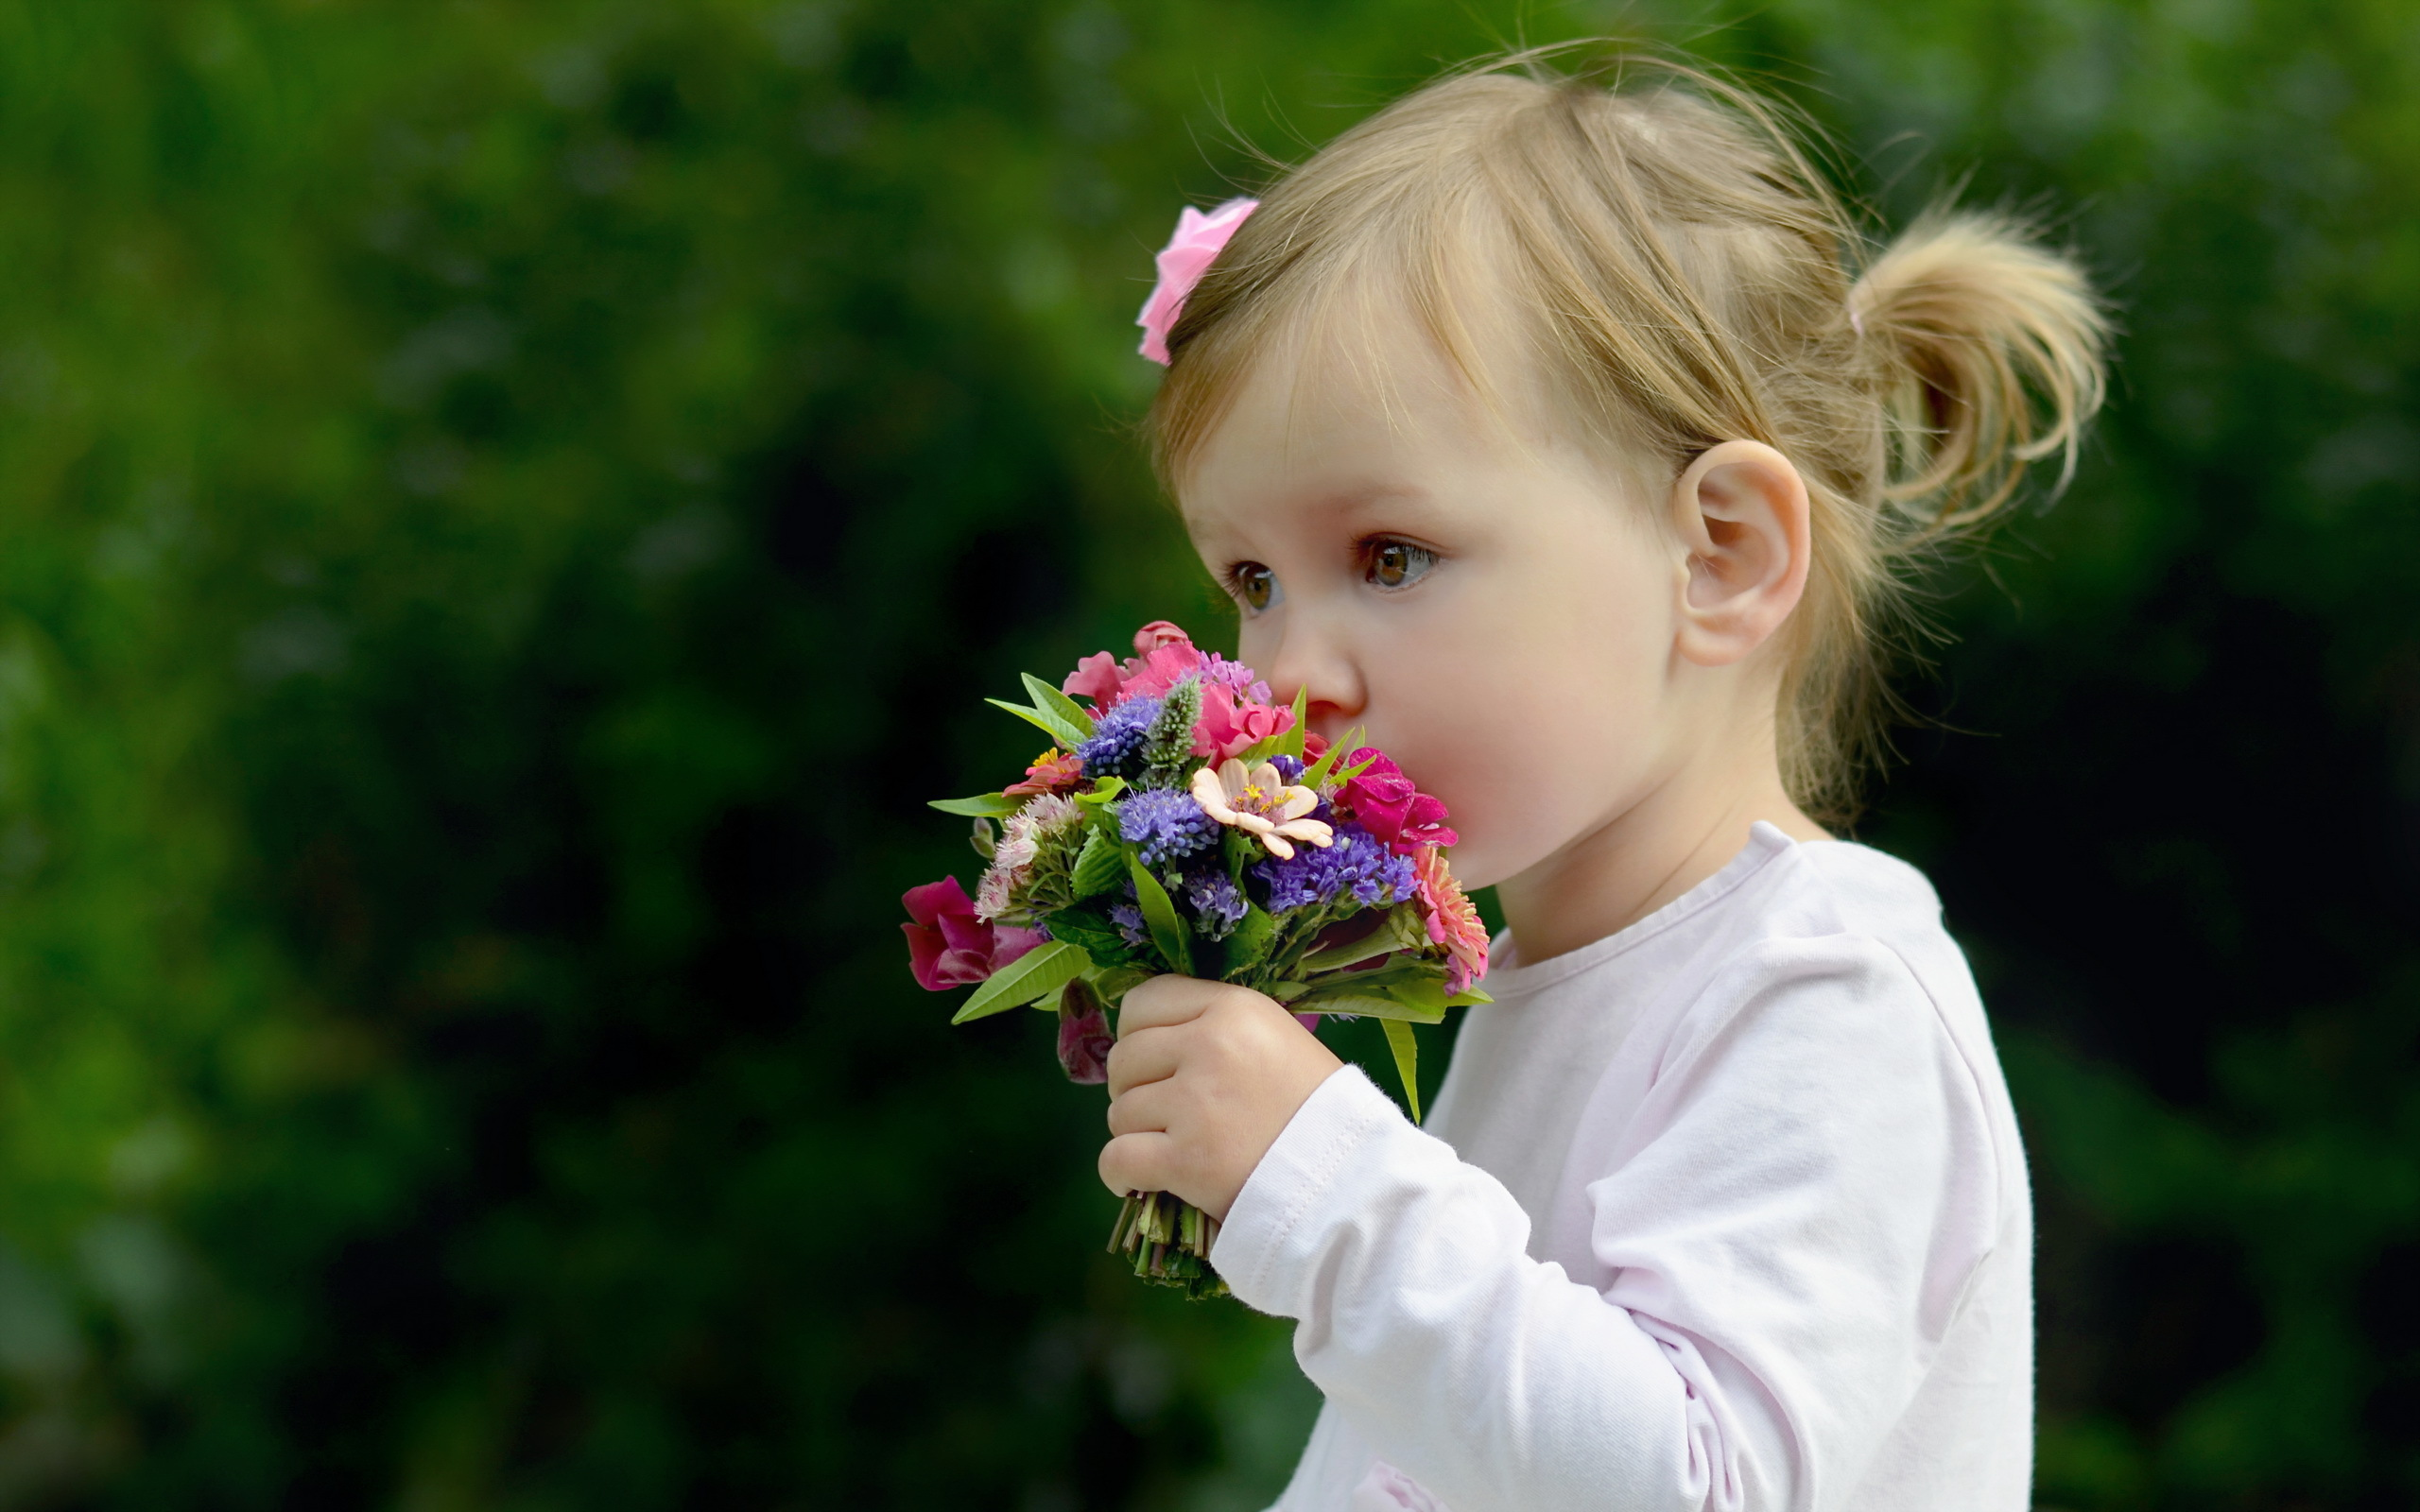 Sweet Baby Girl Wallpaper For Facebook Child Full Hd Wallpaper And Background Image 2560x1600